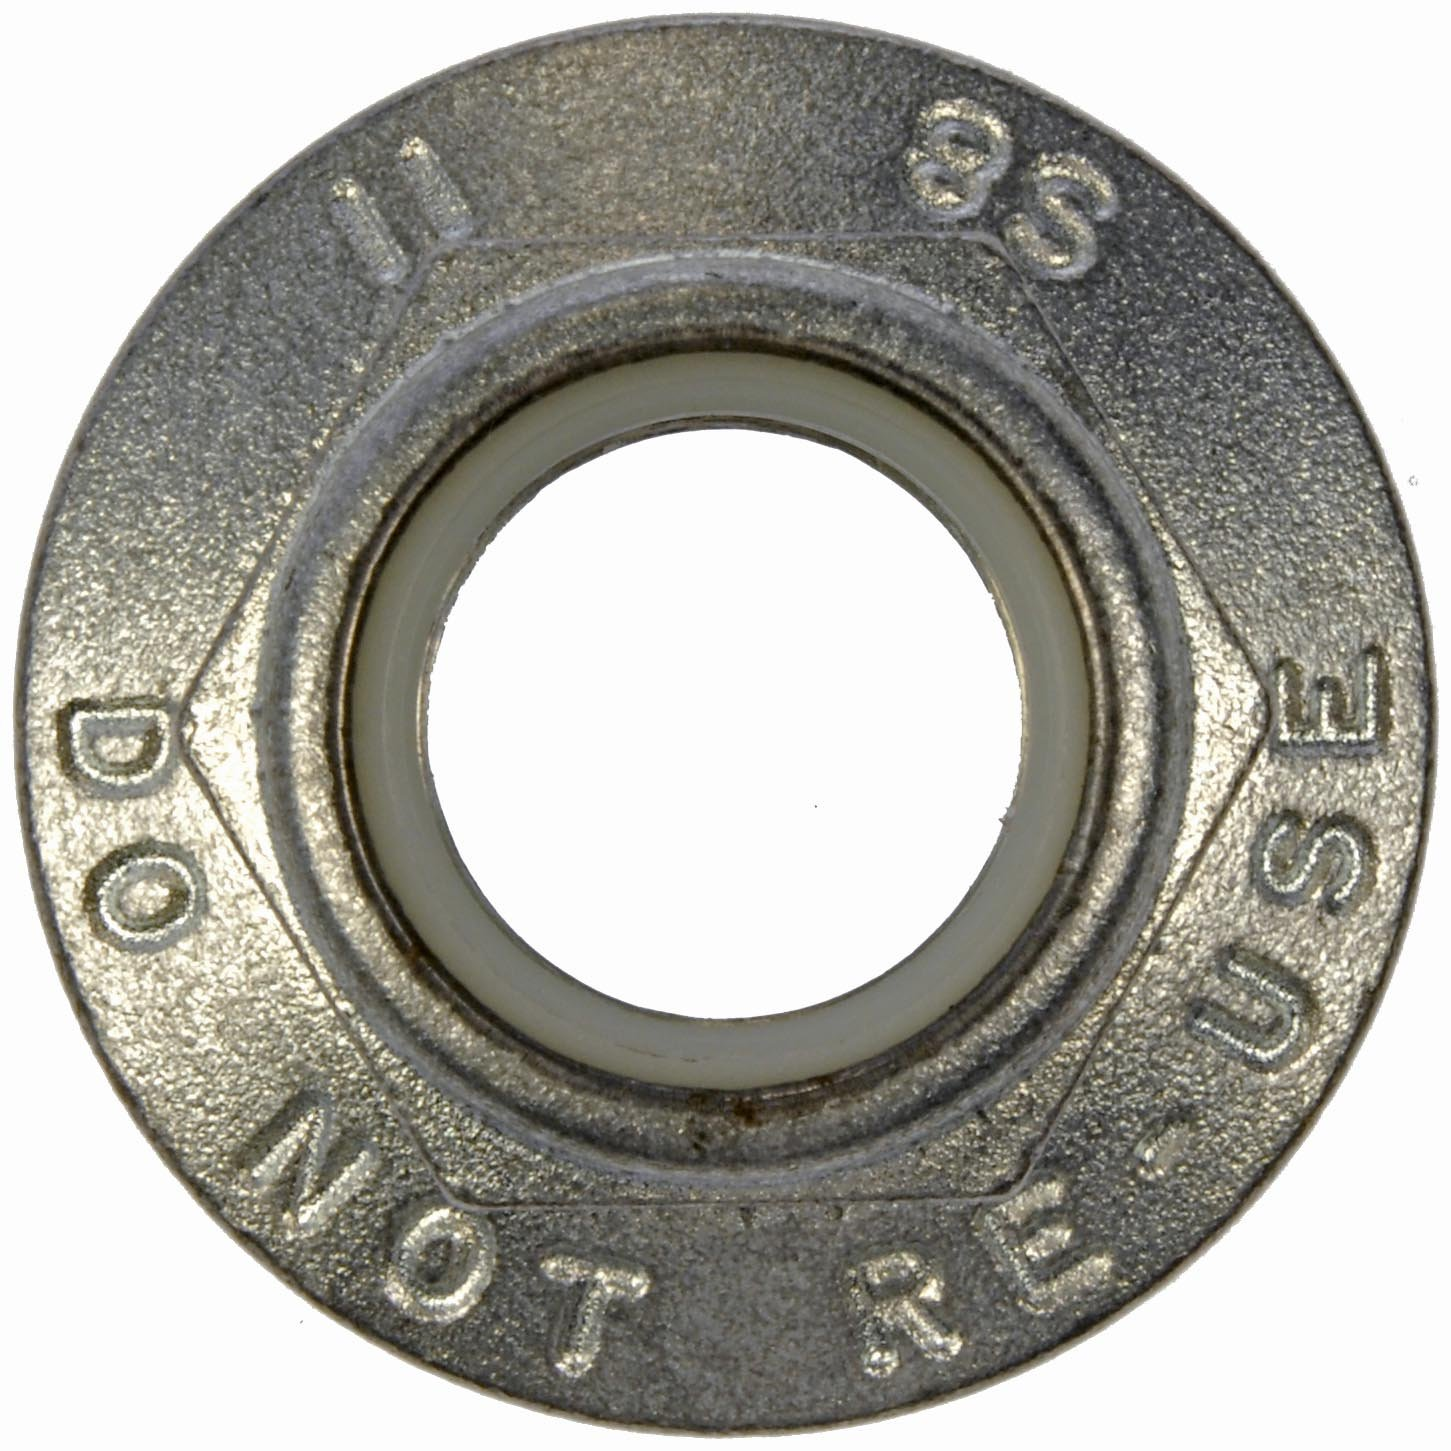 Dorman 615-186 Axle/Spindle Nut, (Pack of 2)